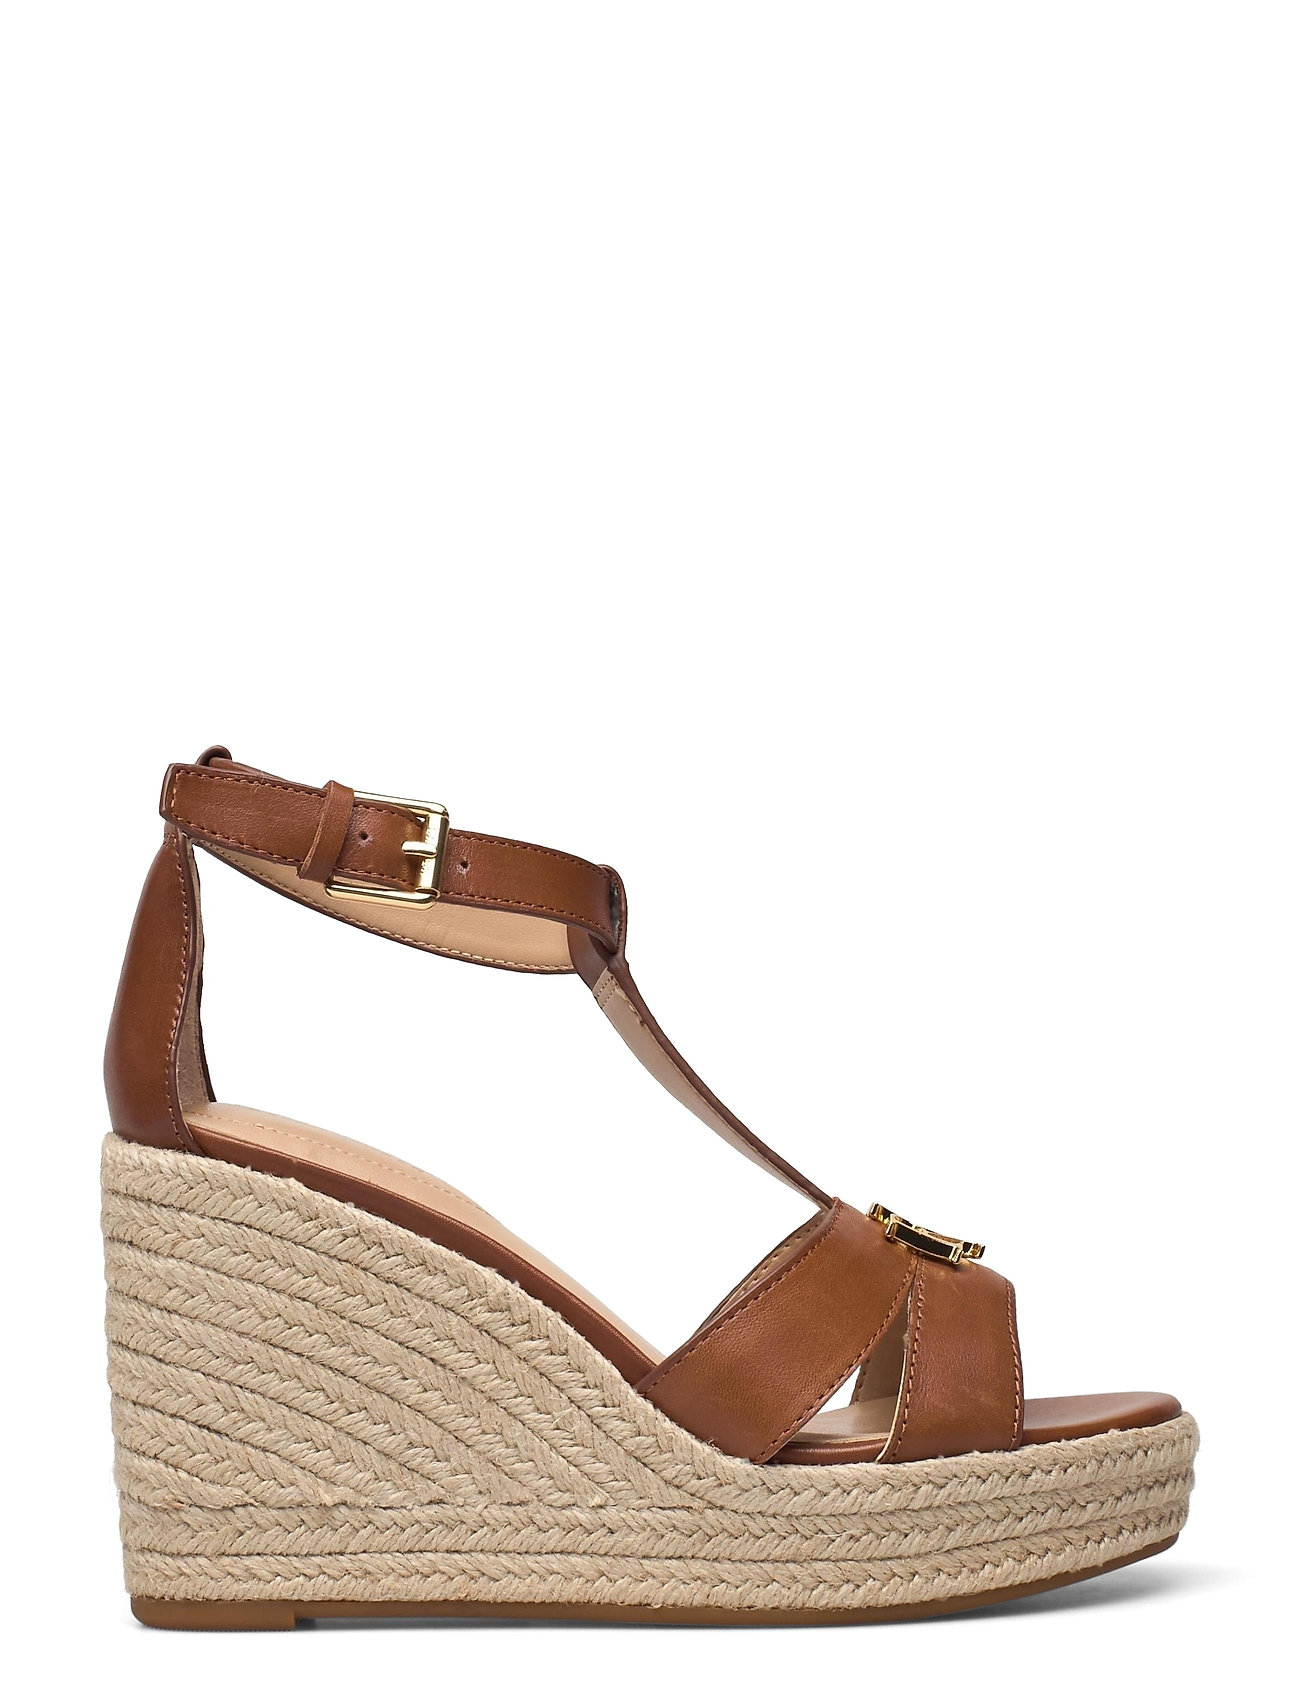 Lauren Ralph Lauren - Hale Leather Sandal - højhælede espadrillos - deep saddle tan - 1